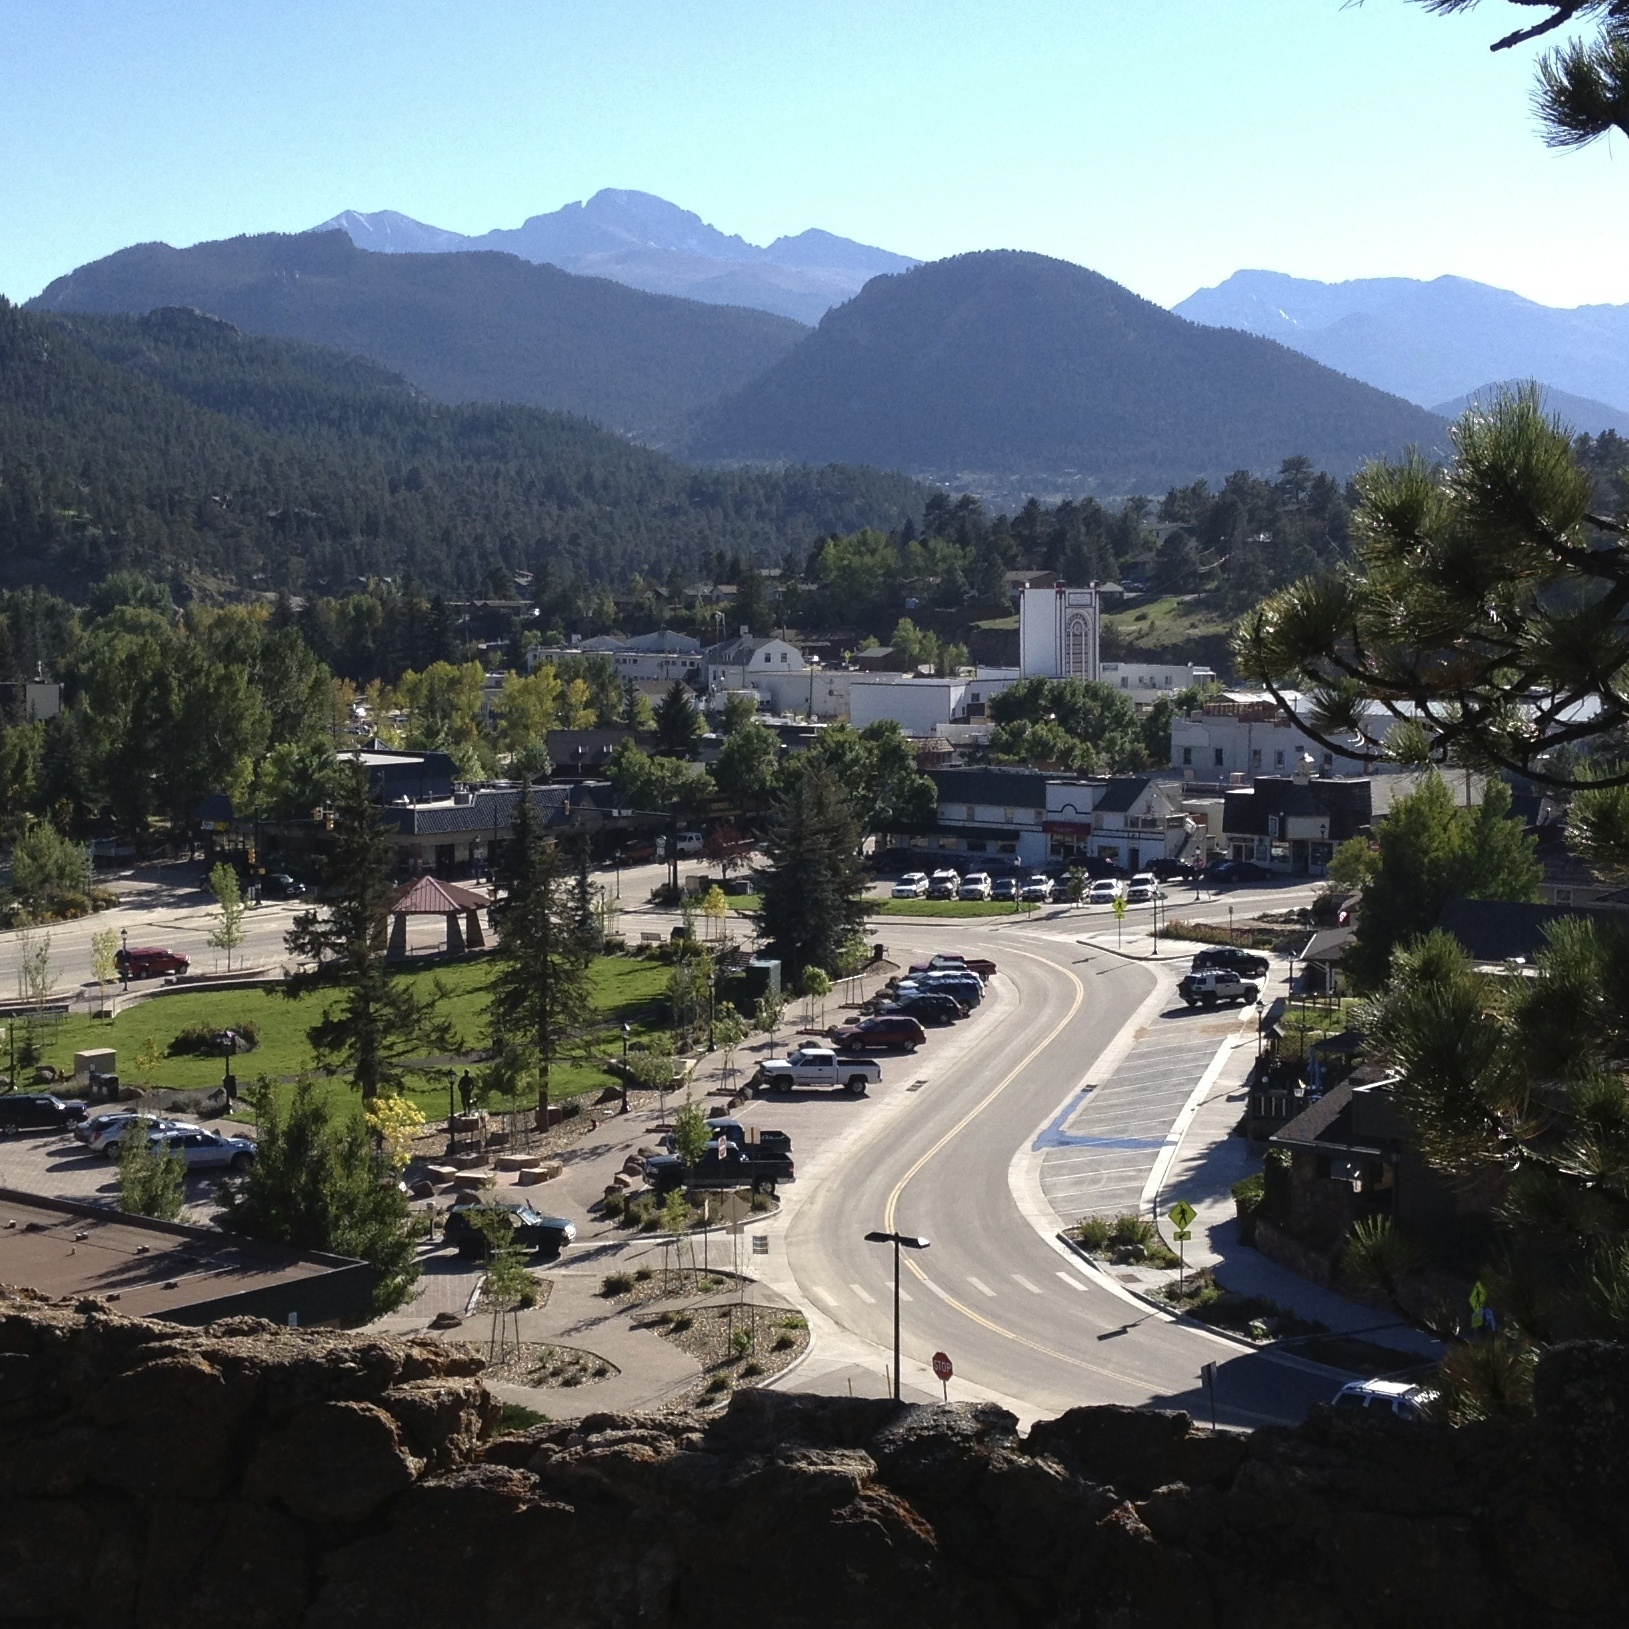 Estes Park, Colo., is known as the gateway to Rocky Mountain National Park. Two of the three main roads into town were ruined in recent floods.